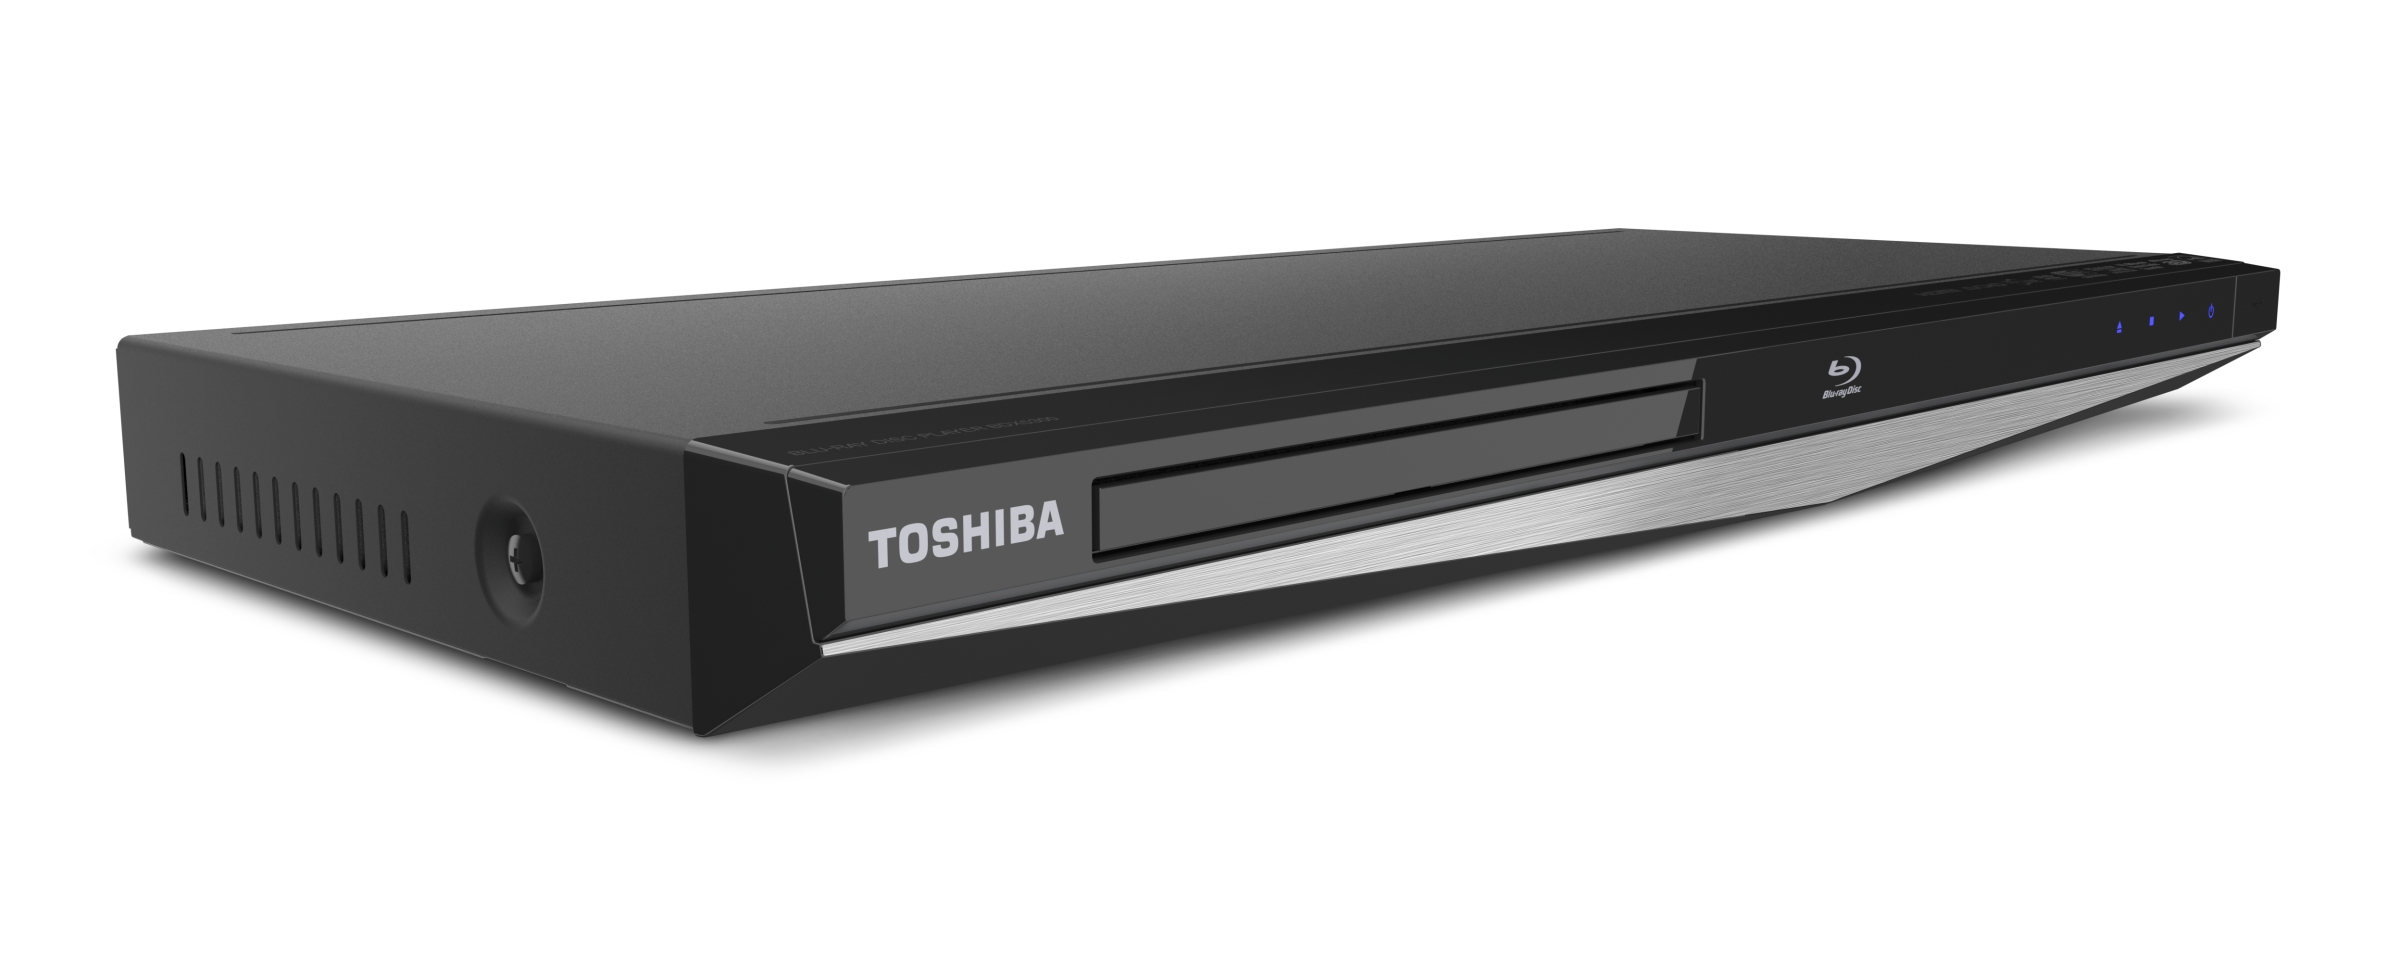 Father's Day Gifts Ideas – Toshiba Bluray Player